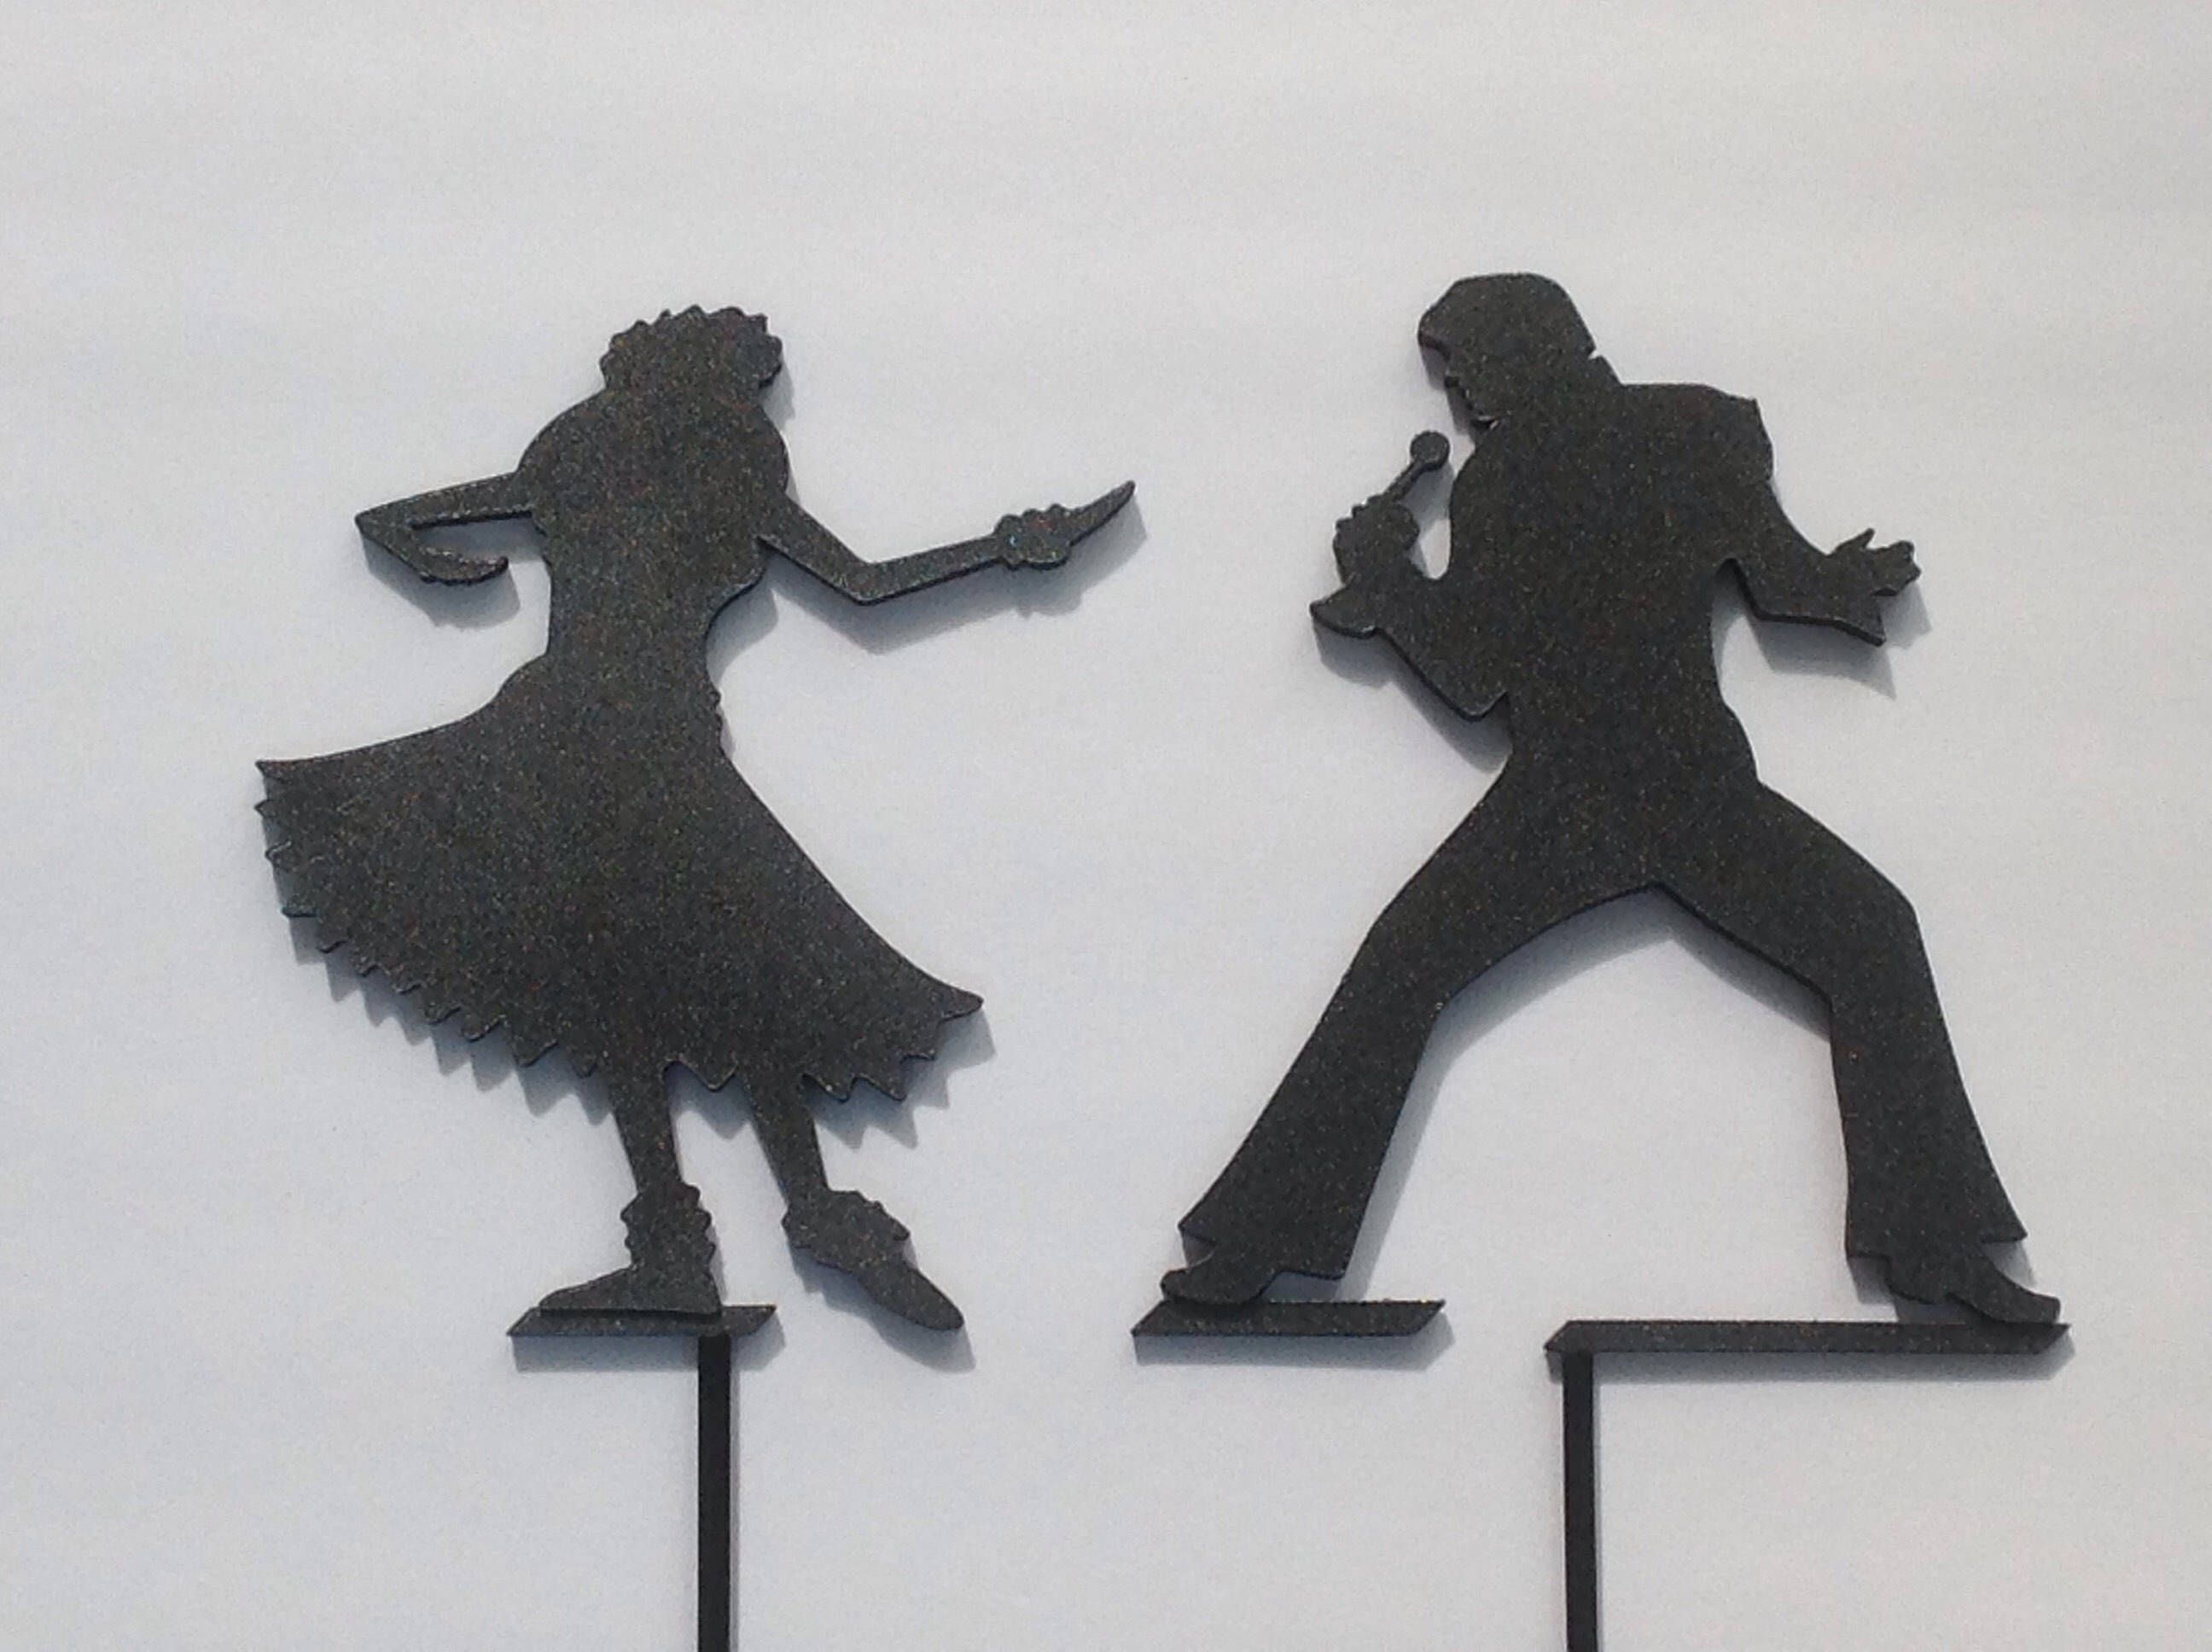 Custom Silhouette Figure Wedding Cake Toppers | Cake Toppers ...